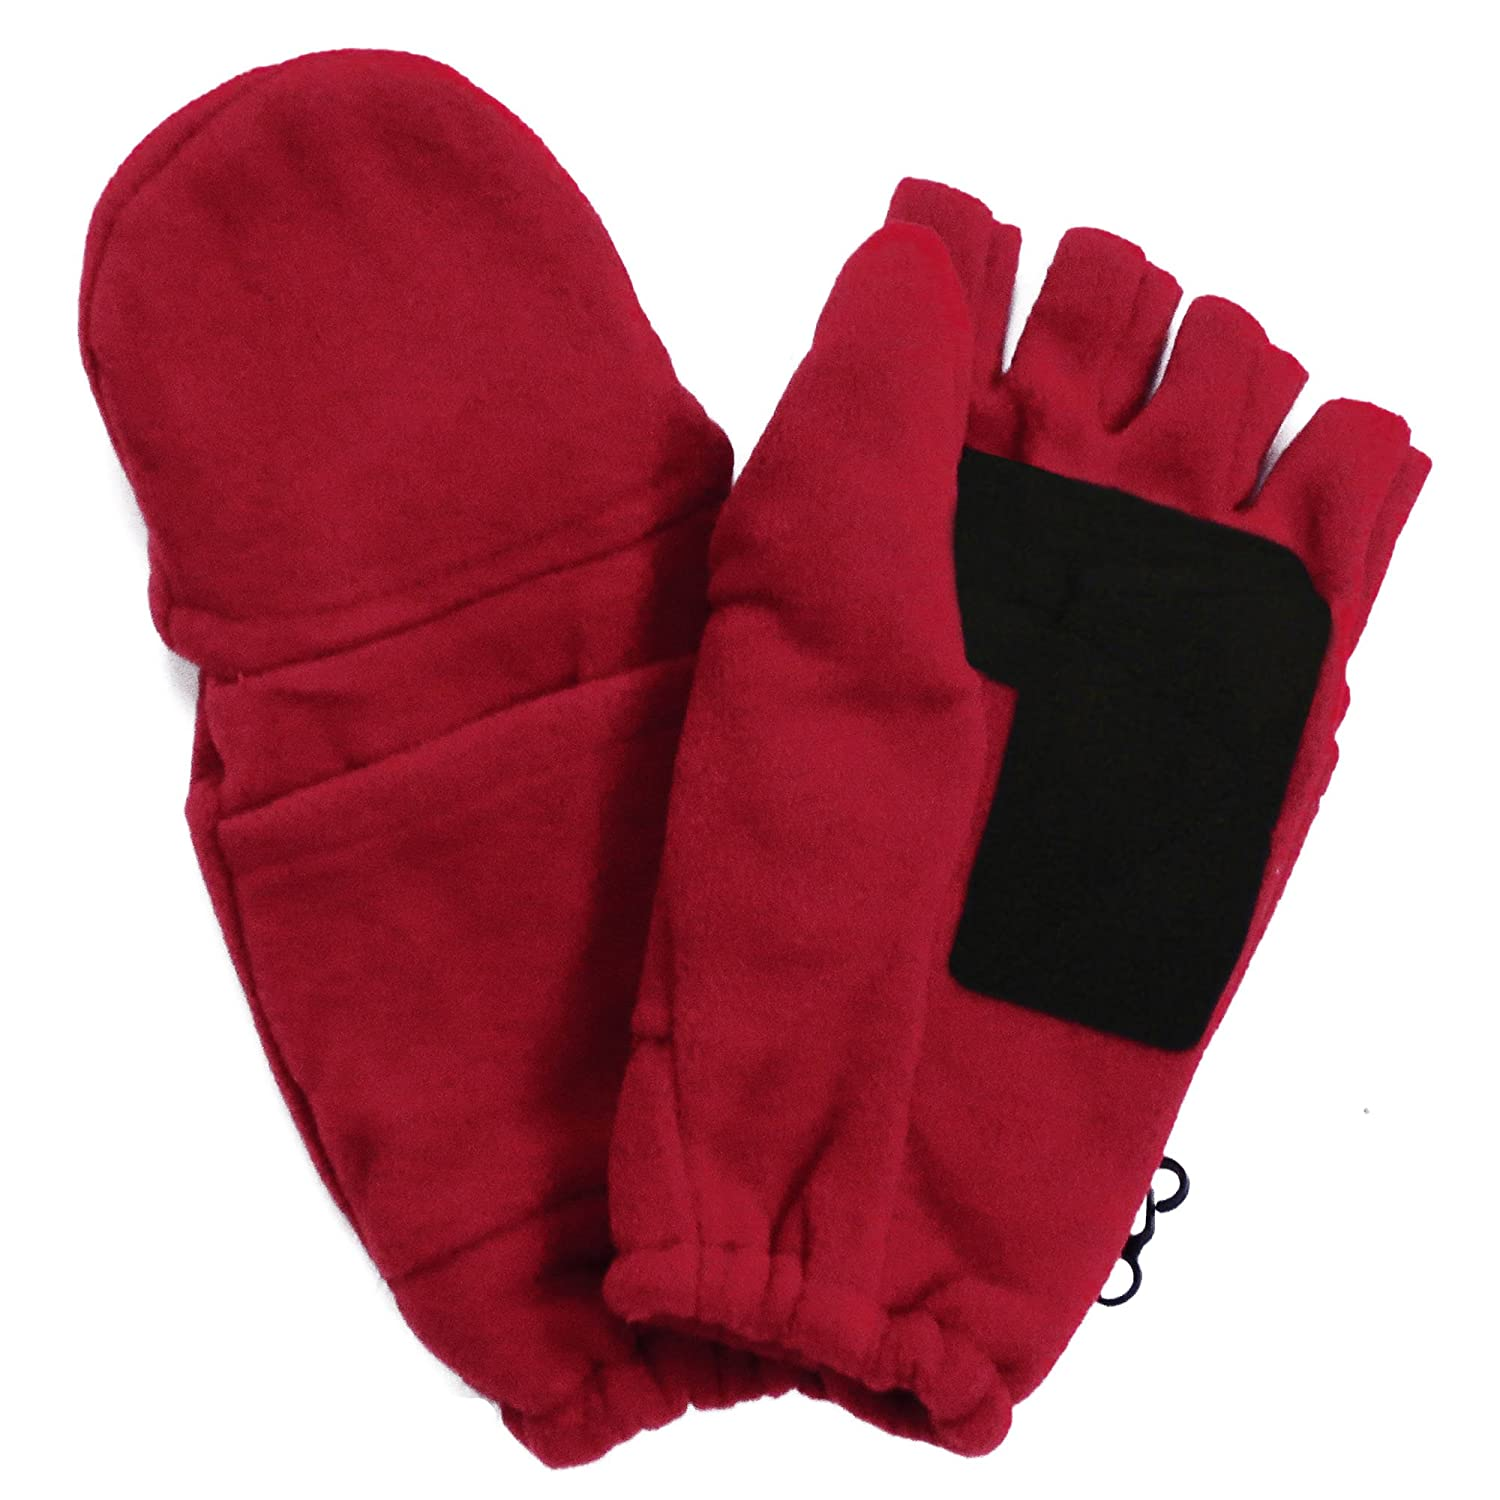 Mens gloves with mitten flap - Amazon Com Unisex Ski Skate Convertible Fingerless Fold Over Half Gloves Mittens Black Clothing